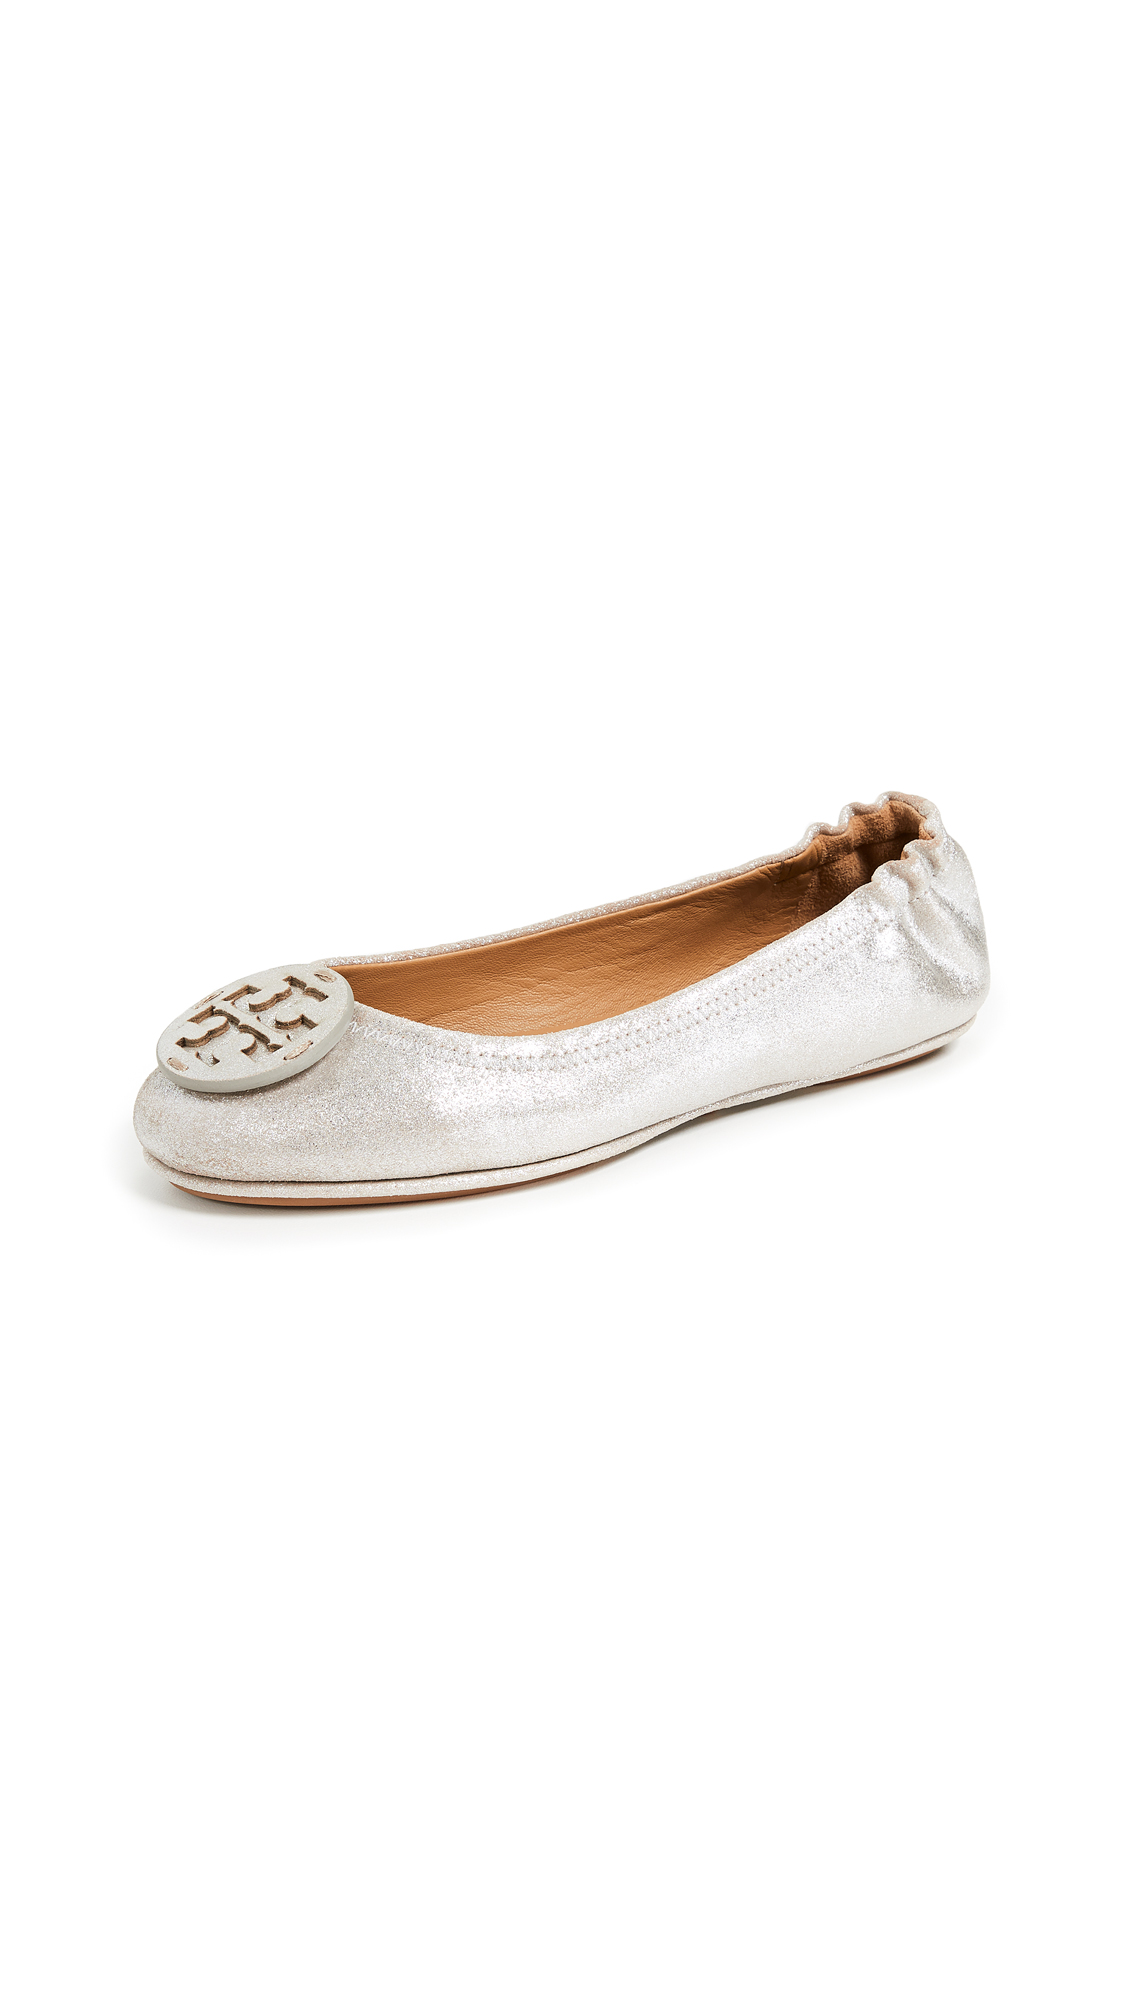 Tory Burch Minnie Travel Logo Ballet Flats - Metallic Perfect Sand